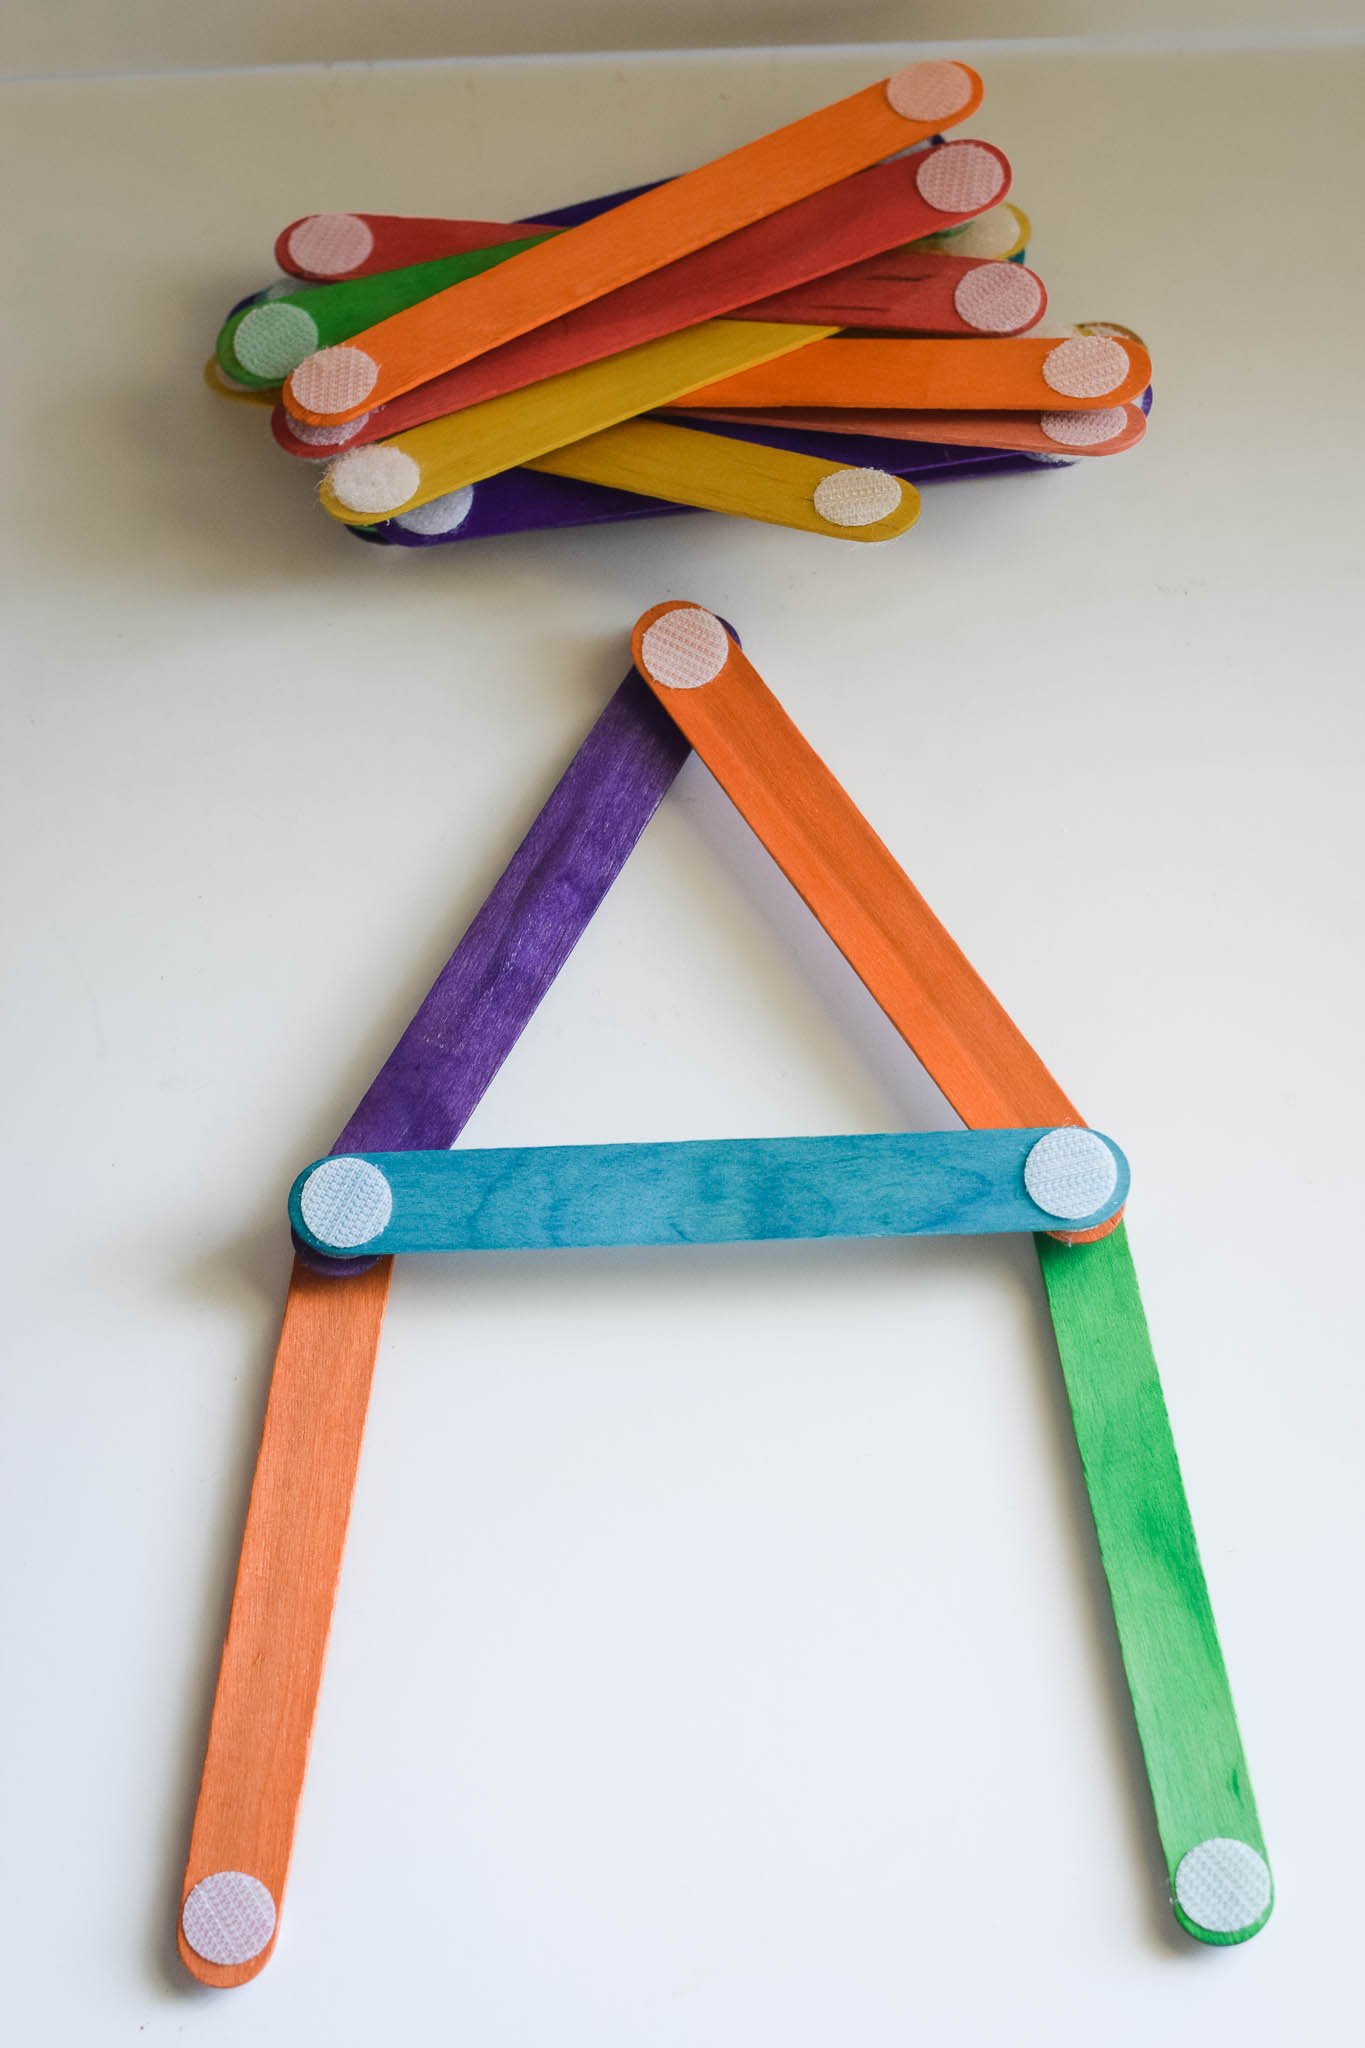 Build and Construct with Popsicle Sticks